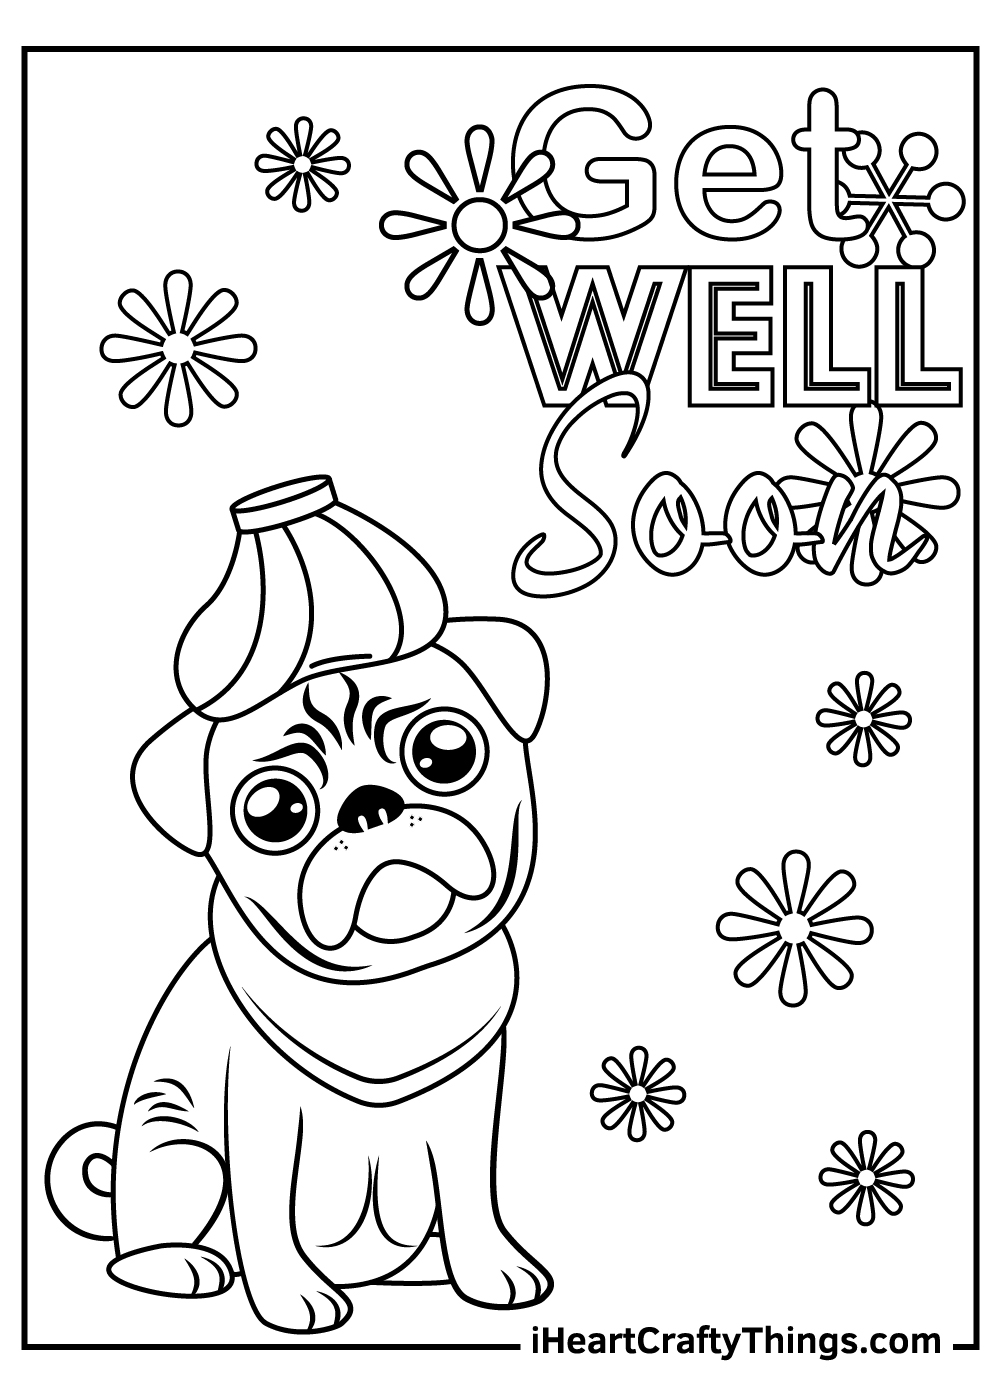 get well soon coloring pages for kids